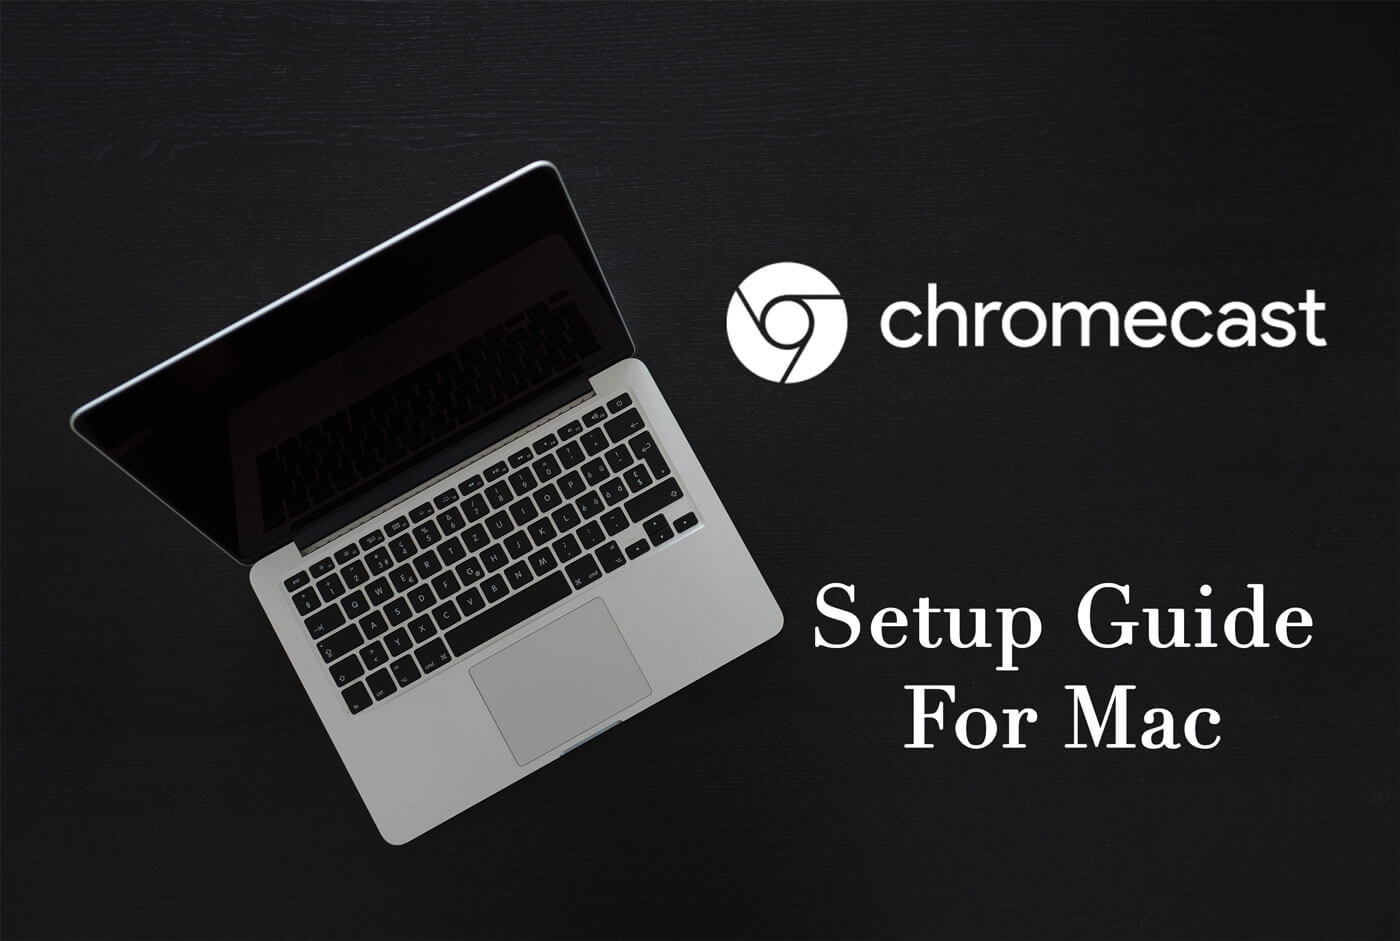 How To Set Up Chromecast On Mac